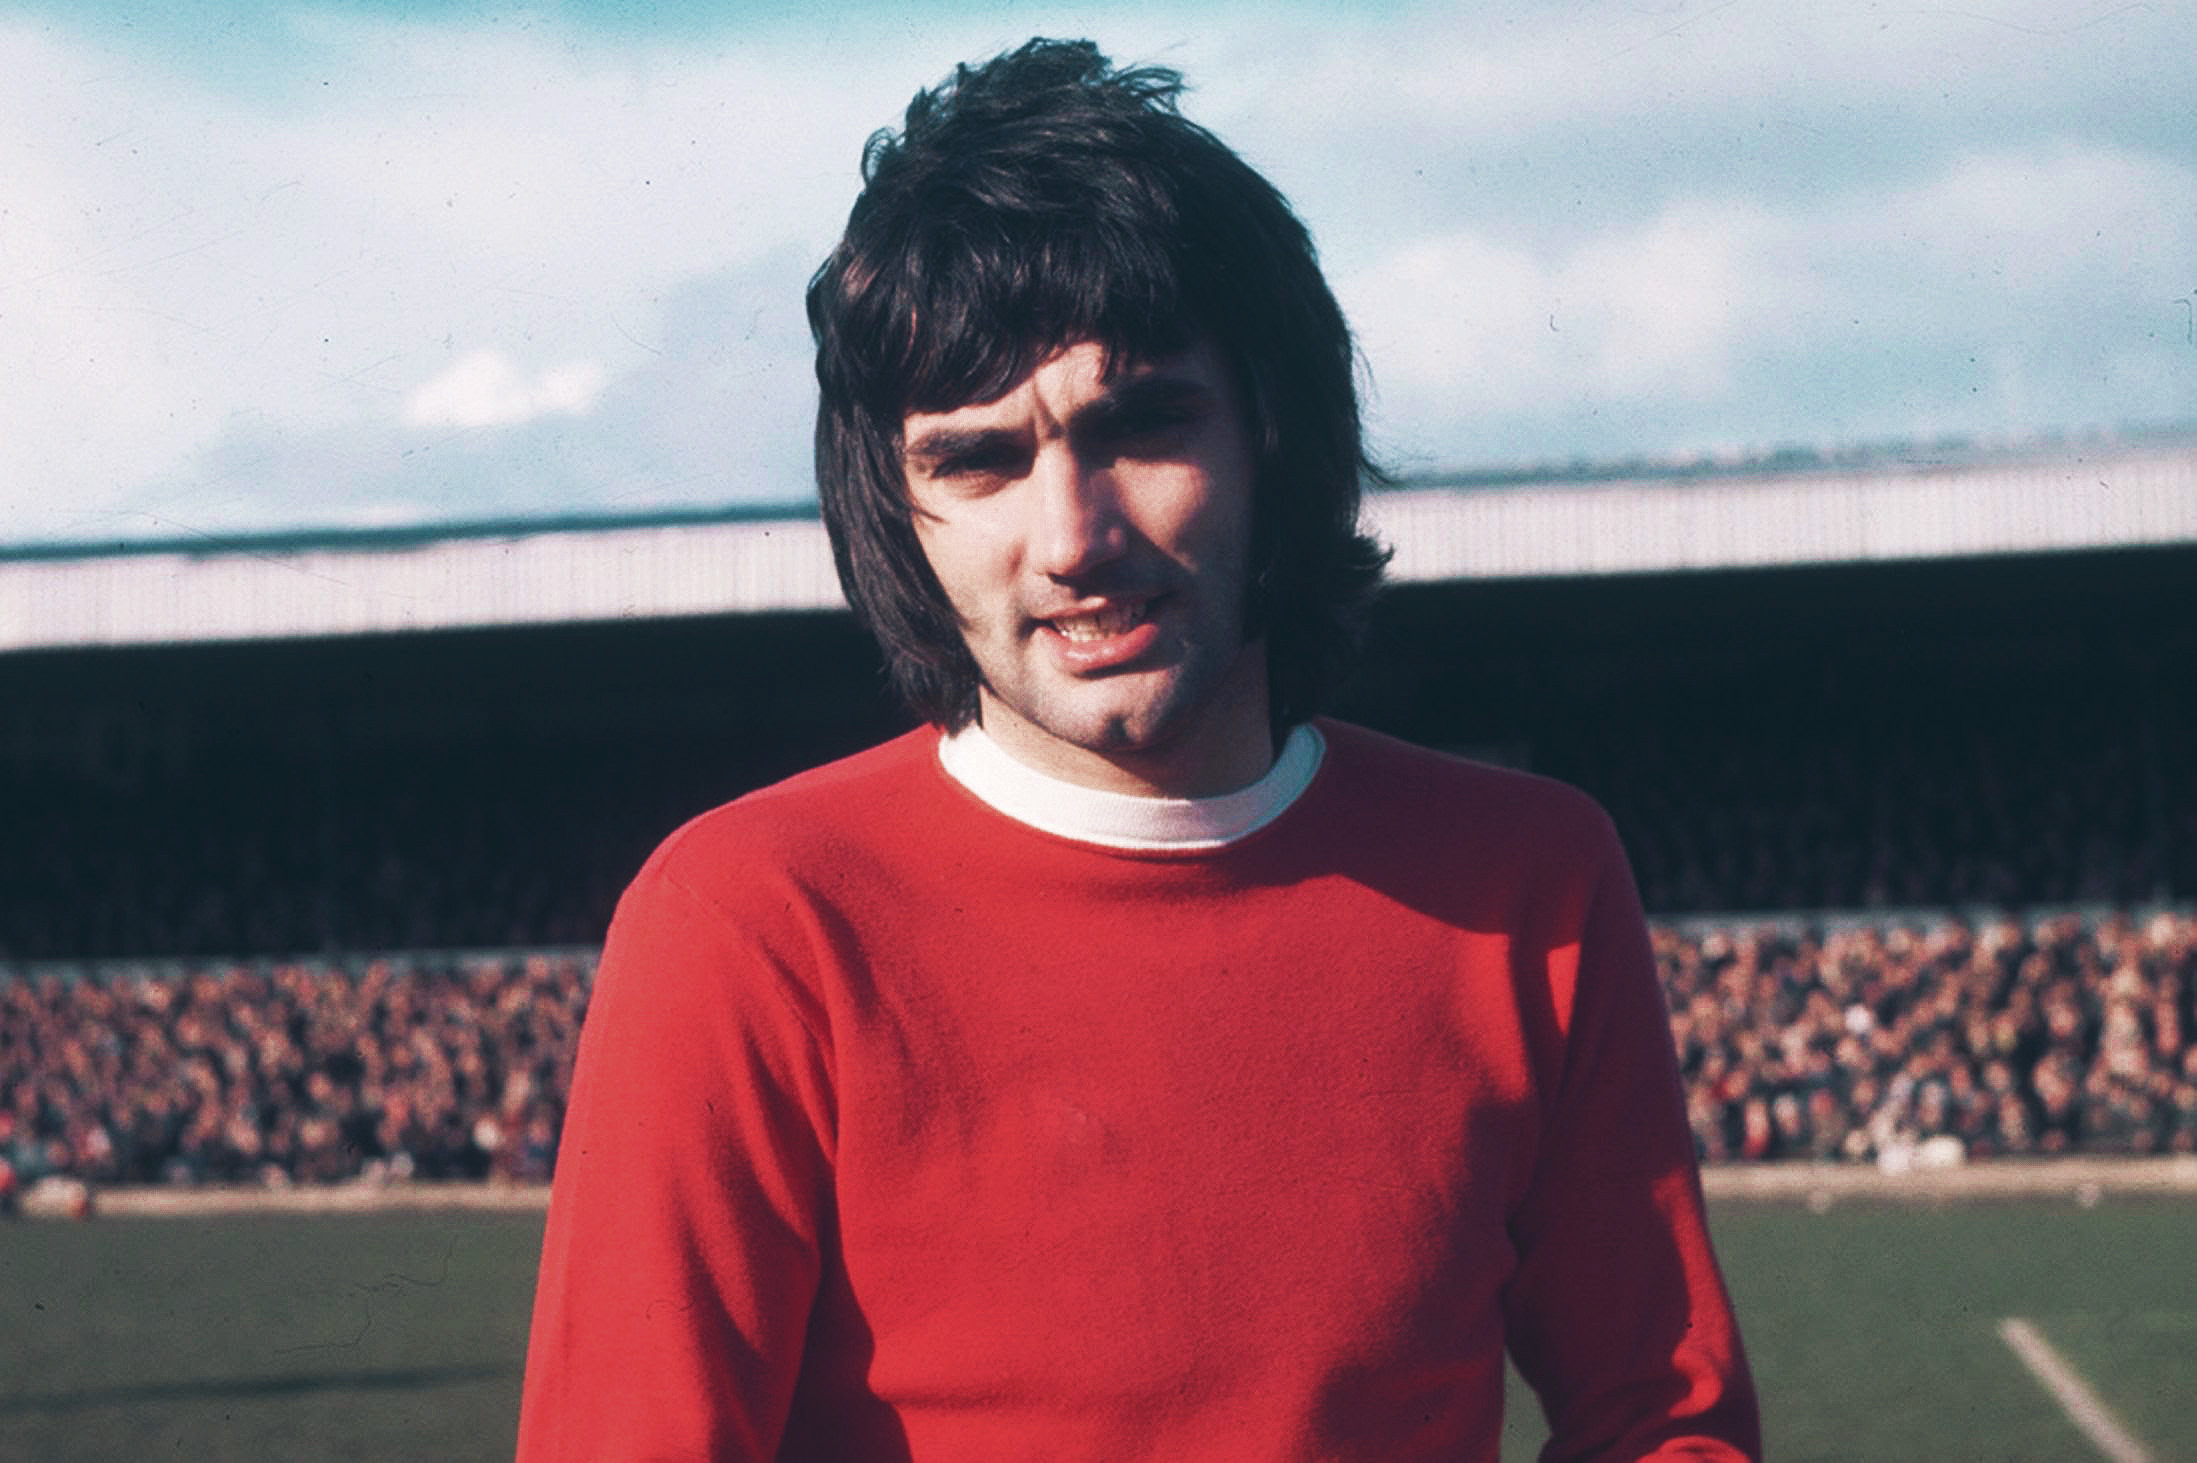 The fleeting but eternal brilliance of George Best